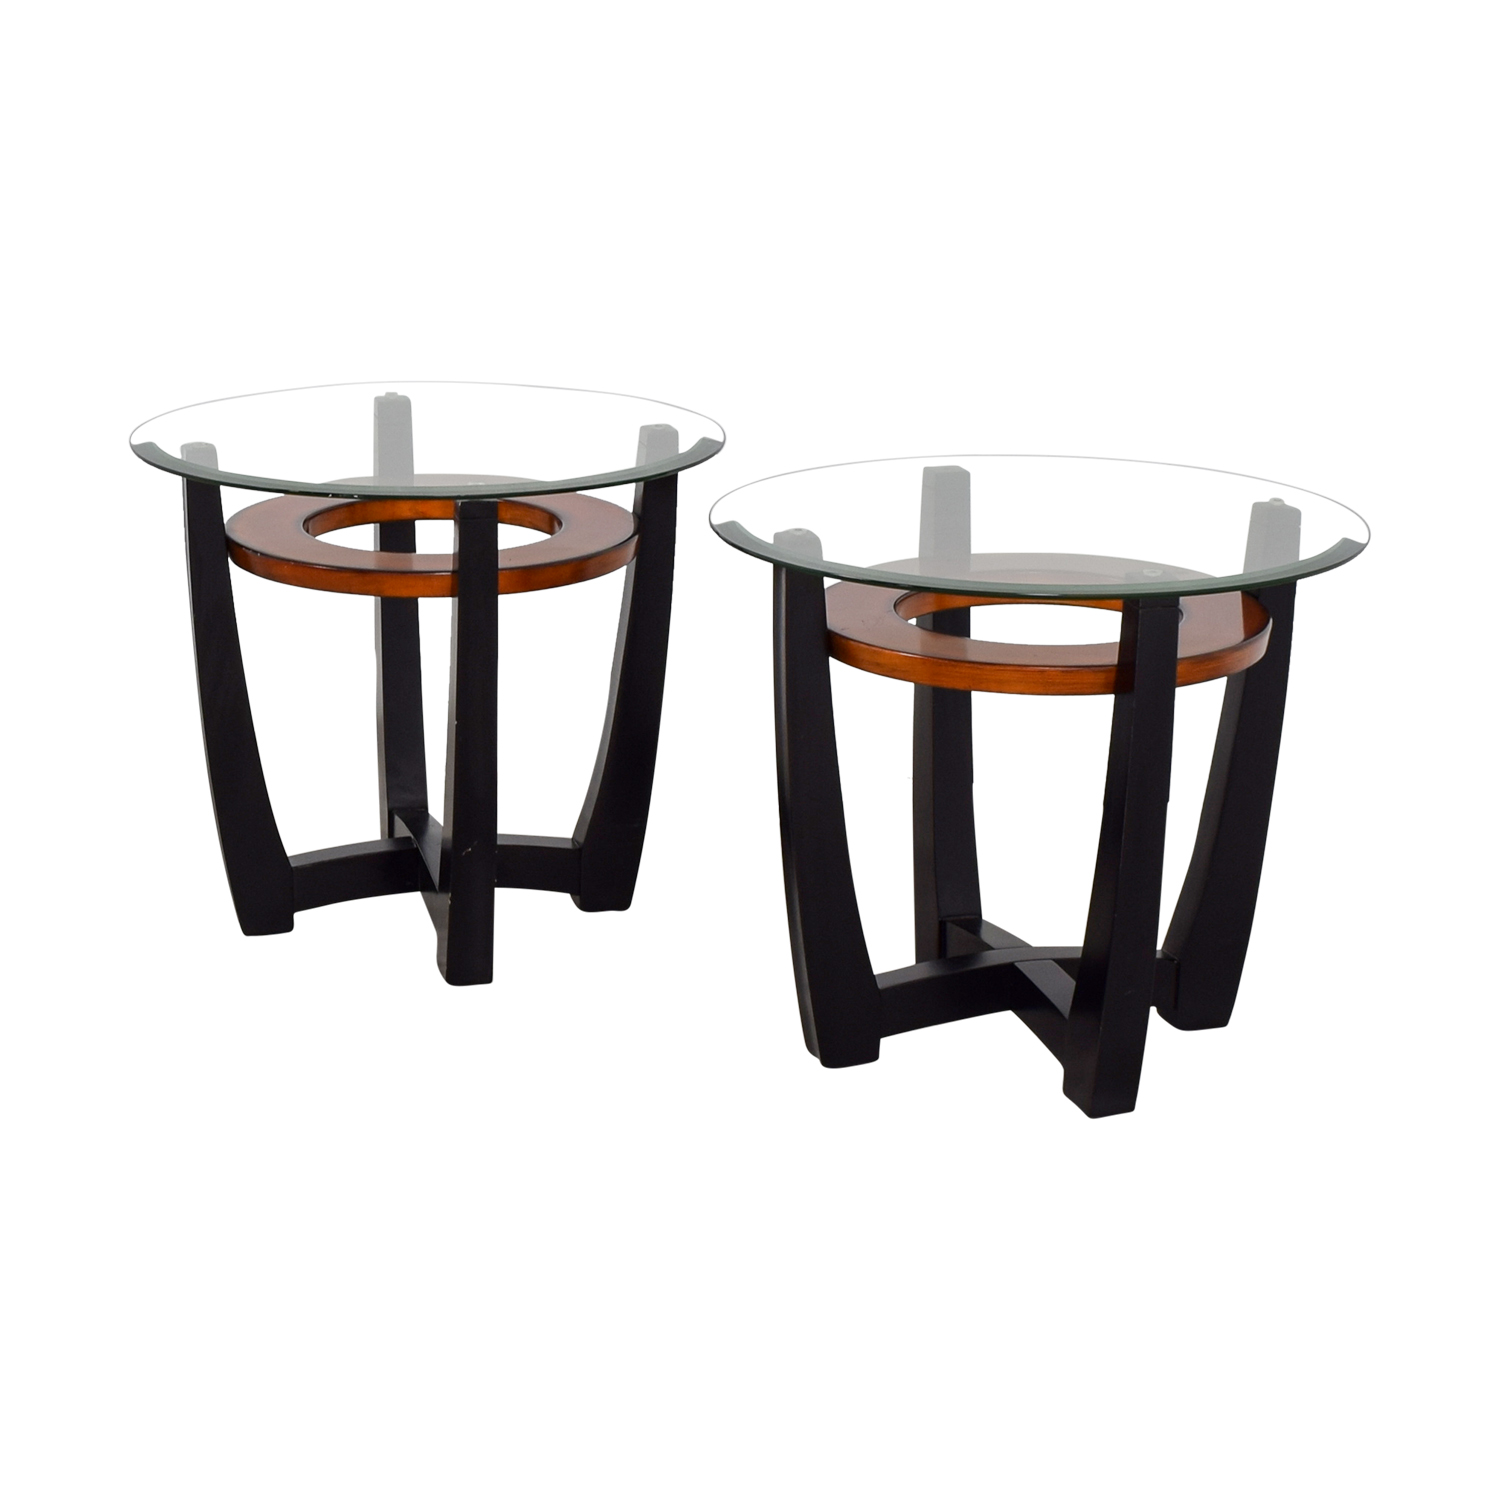 Round Glass Top End Tables 71 Off Elation Elation Round Glass And Wood End Tables